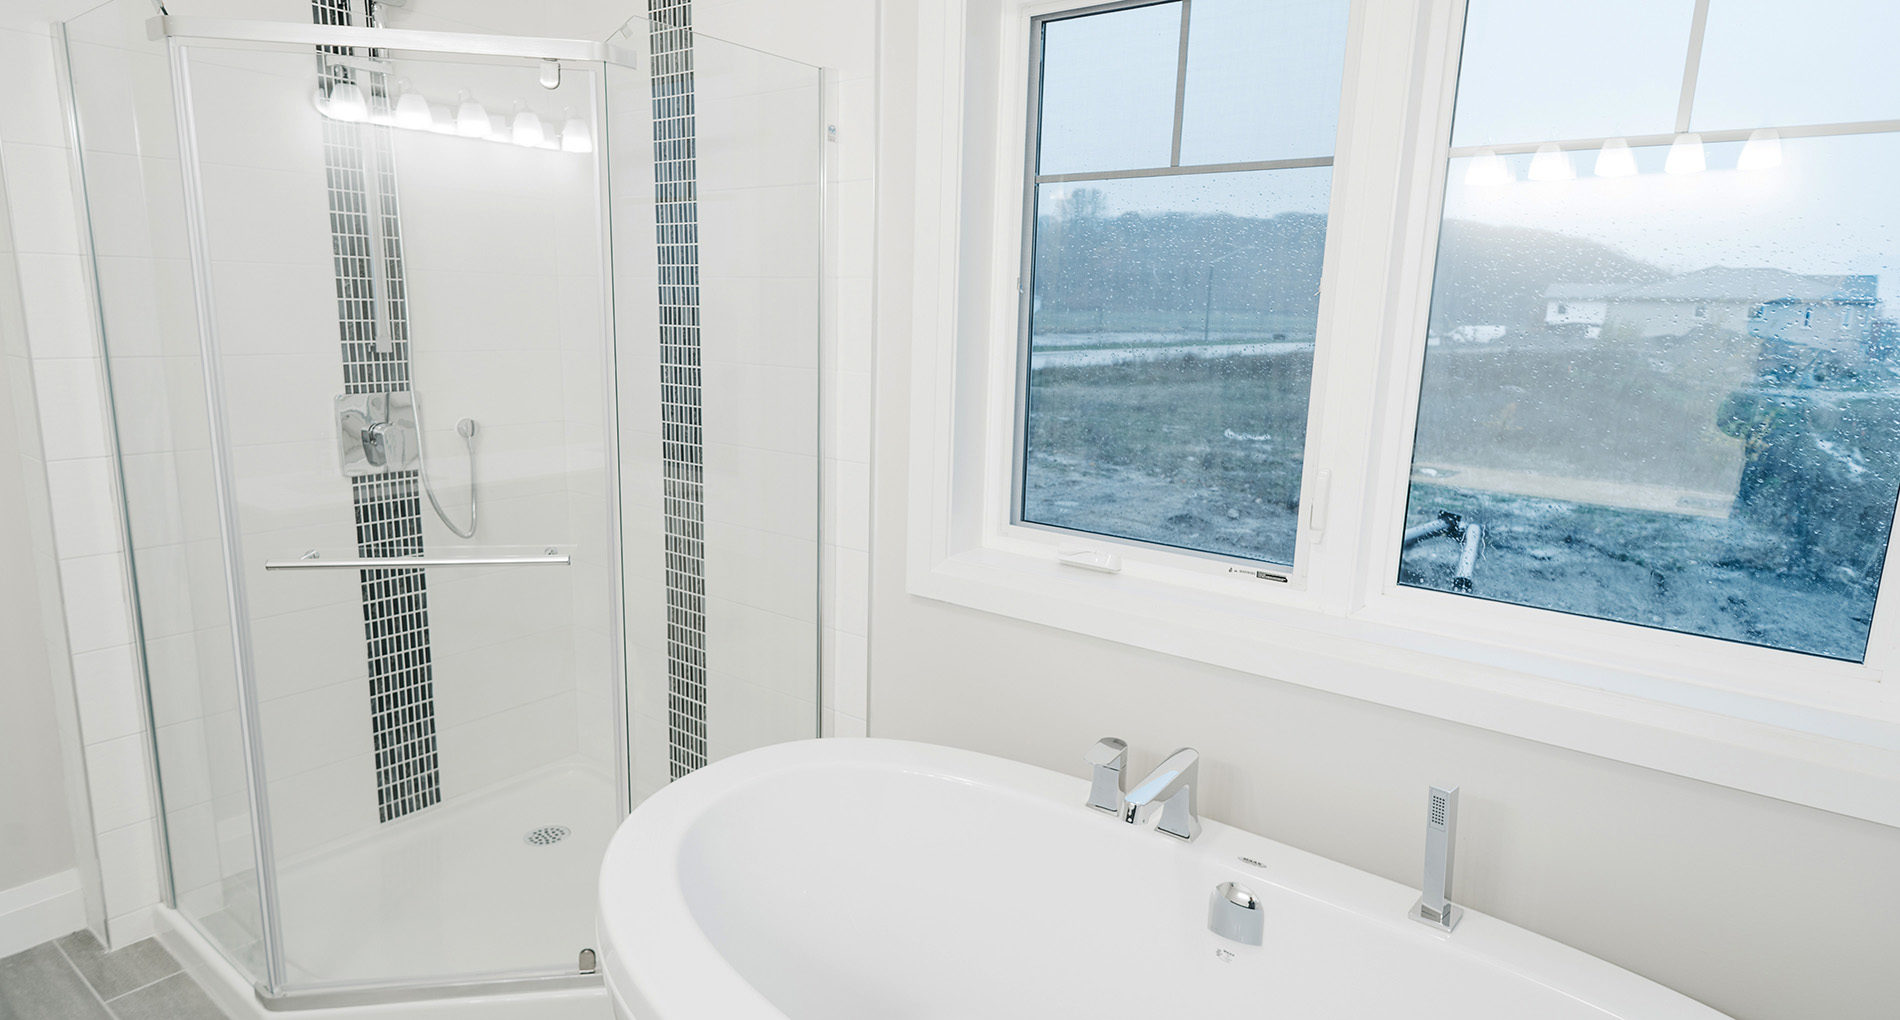 Bathroom Renovation Greybruce Waterfront Slider